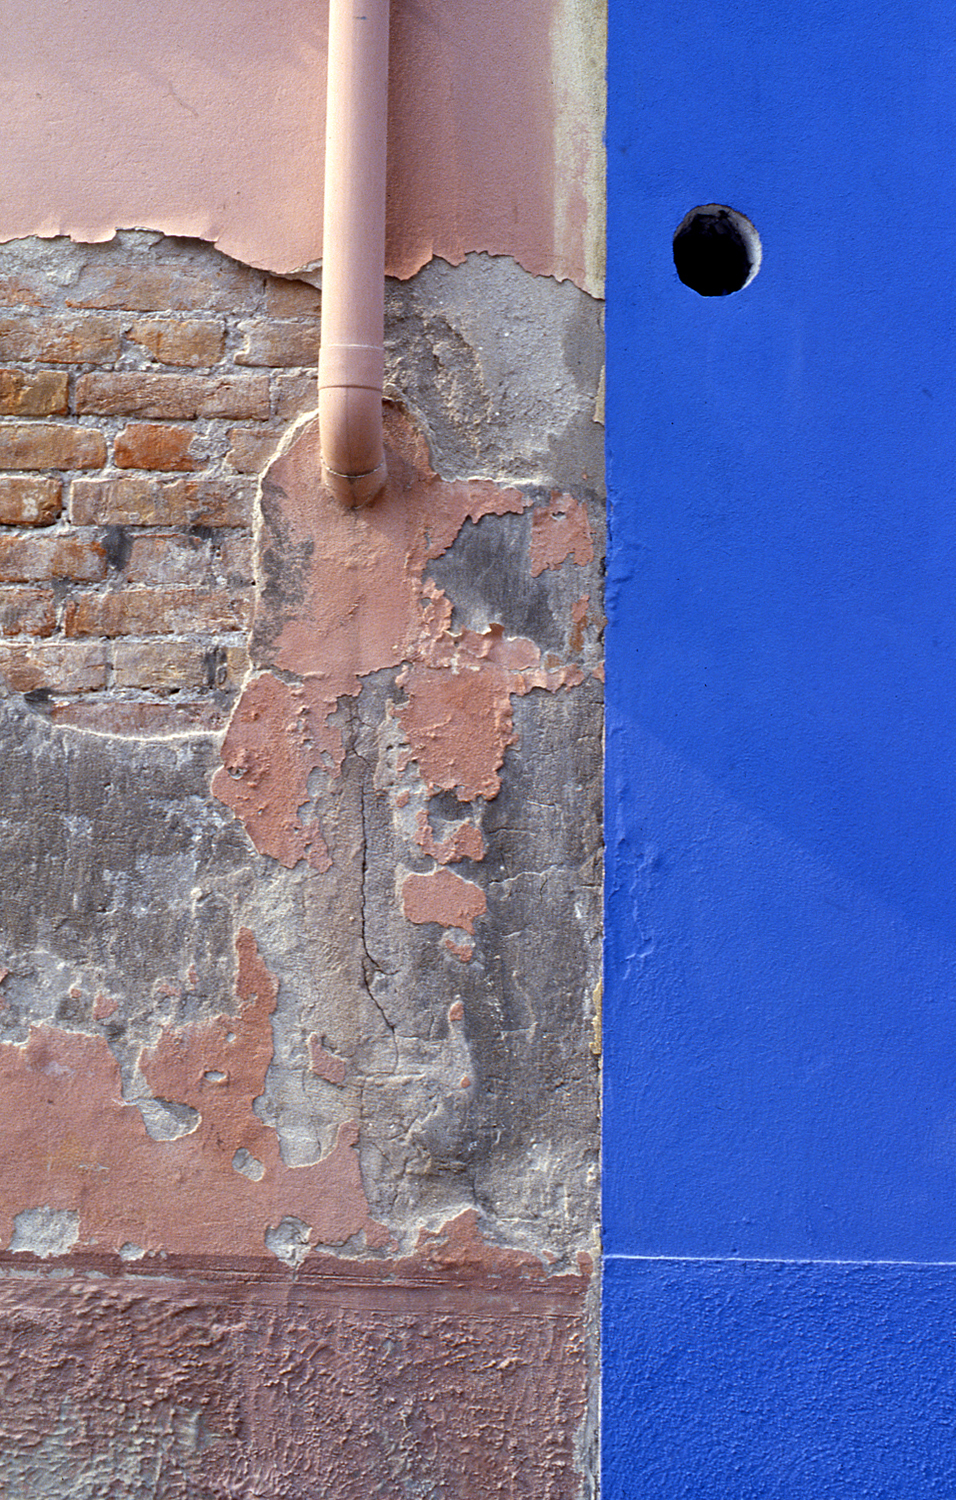 Pink and Blue Wall, Burano Italy, 1978 , Cibachrome Print, 24 x 16cm, Edition of 10.                            Exhibition:  Burano Colour Works , Australian Centre for Photography, Sydney; Solander Gallery, Canberra; Wagga Wagga City Art Gallery, Wagga Wagga, 1979.